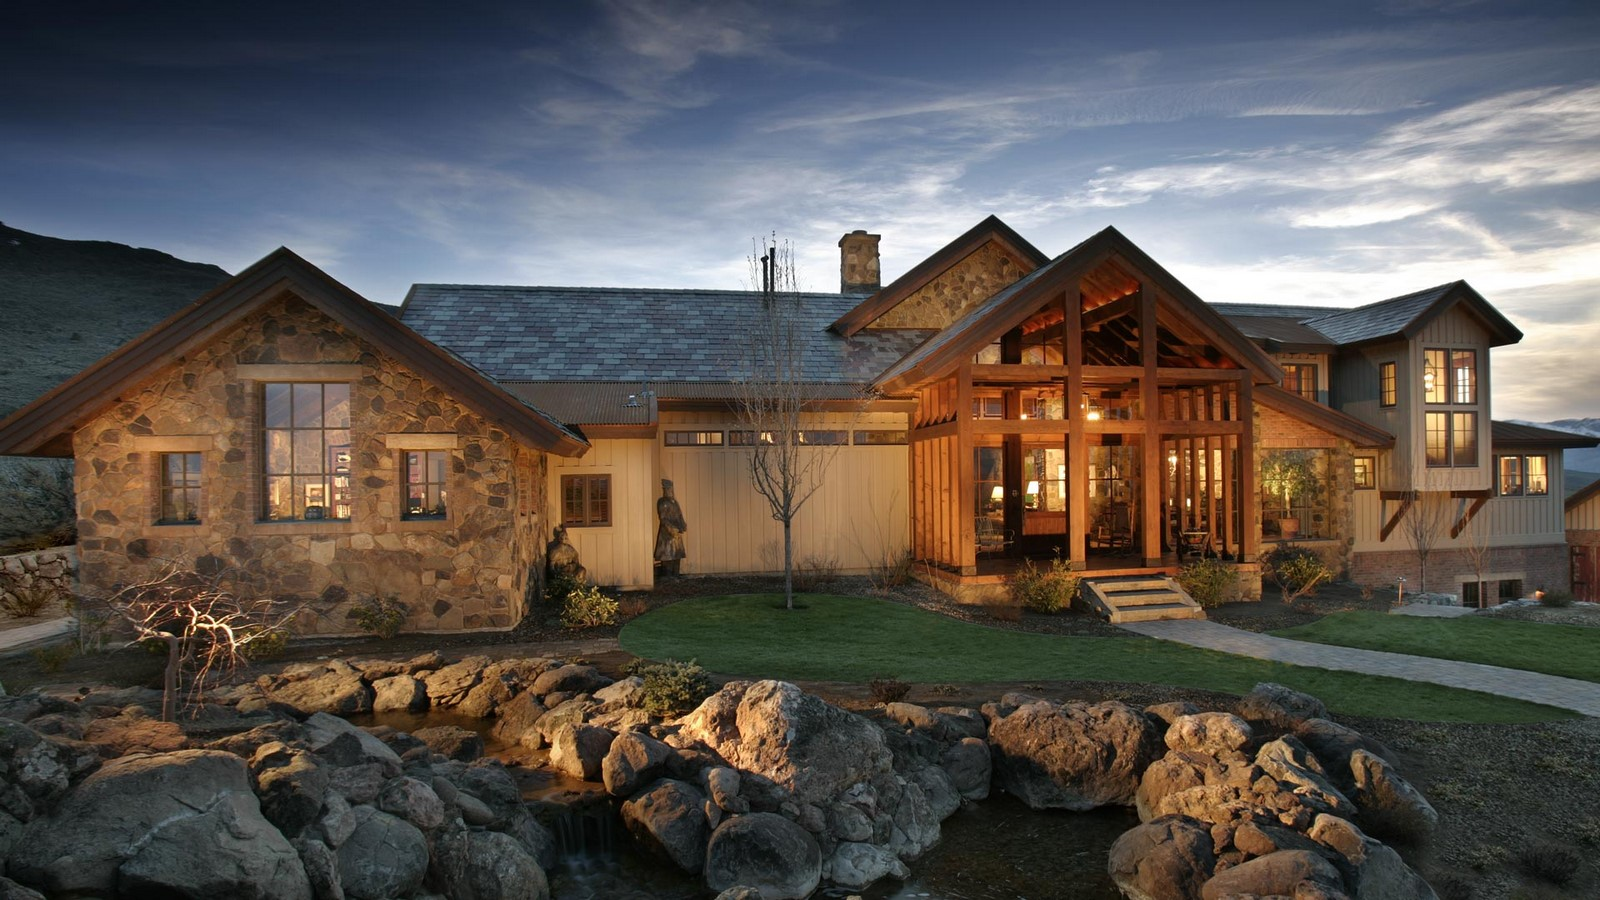 Architects in Reno - Top 40 Architects in Reno - Sheet30